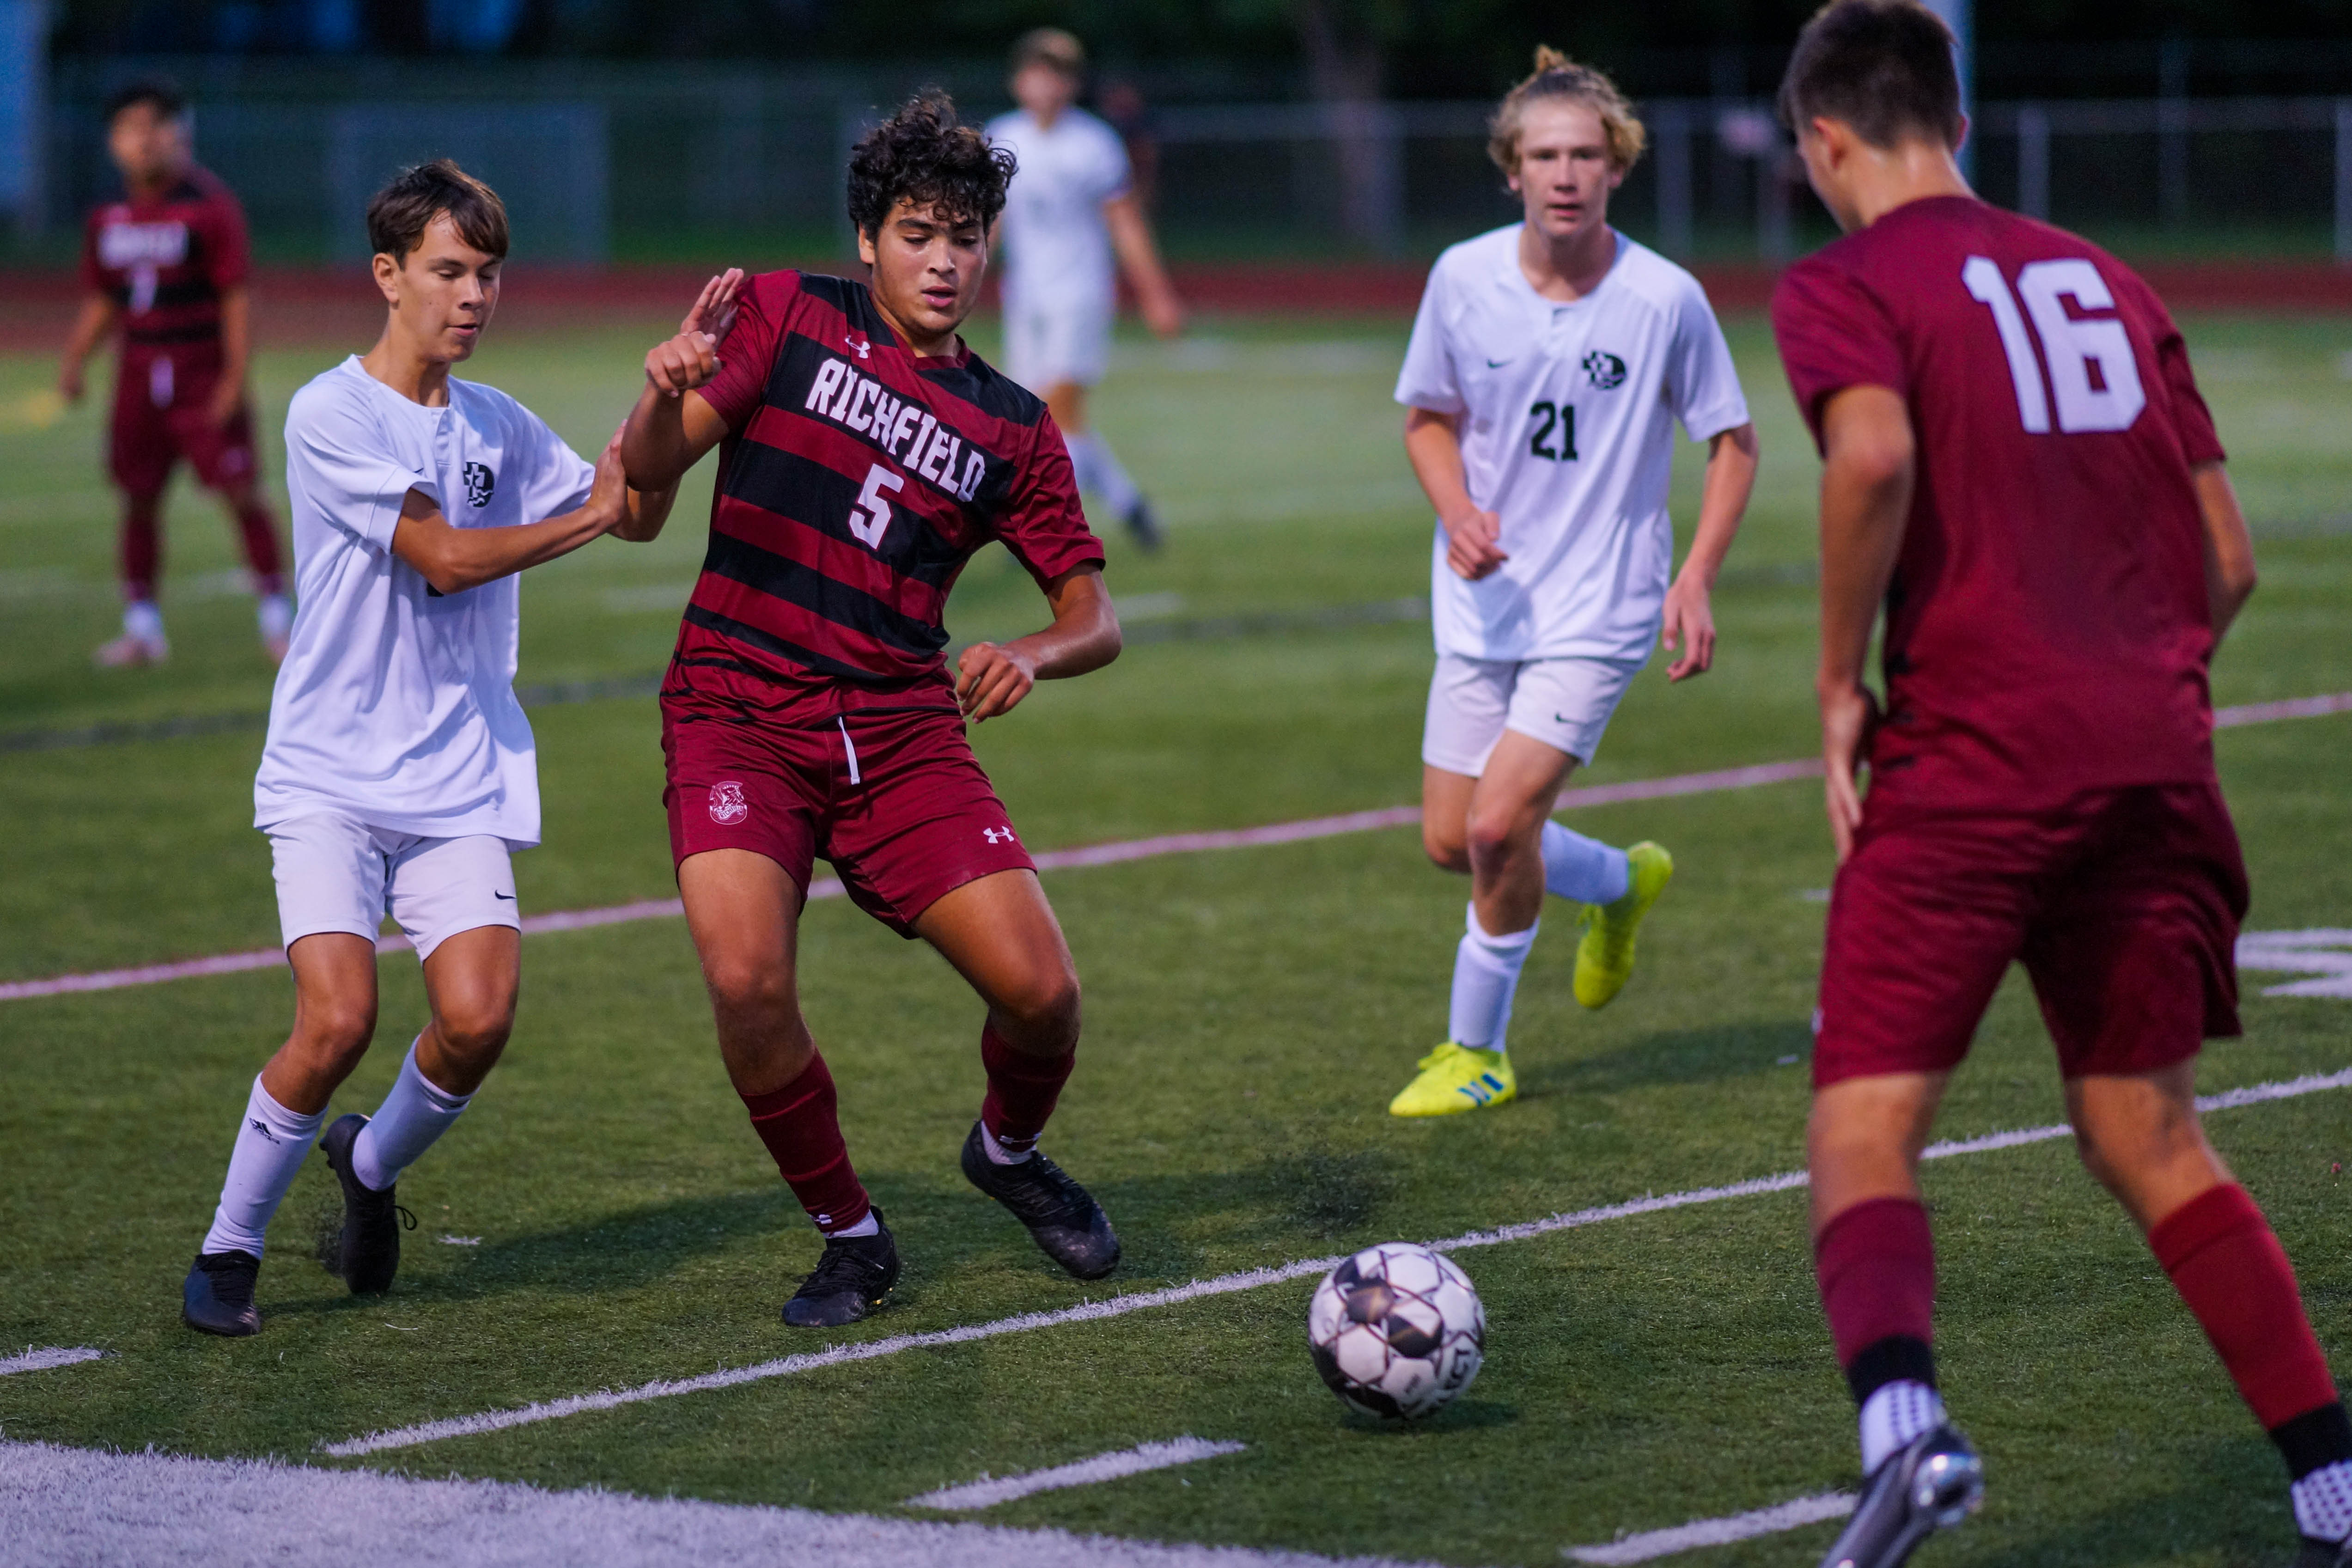 Richfield's Belal Elghorab (5) fights for position on a loose ball Thursday night against DeLaSalle. Elghorab scored the lone goal for Richfield. Photo by Korey McDermott, SportsEngine